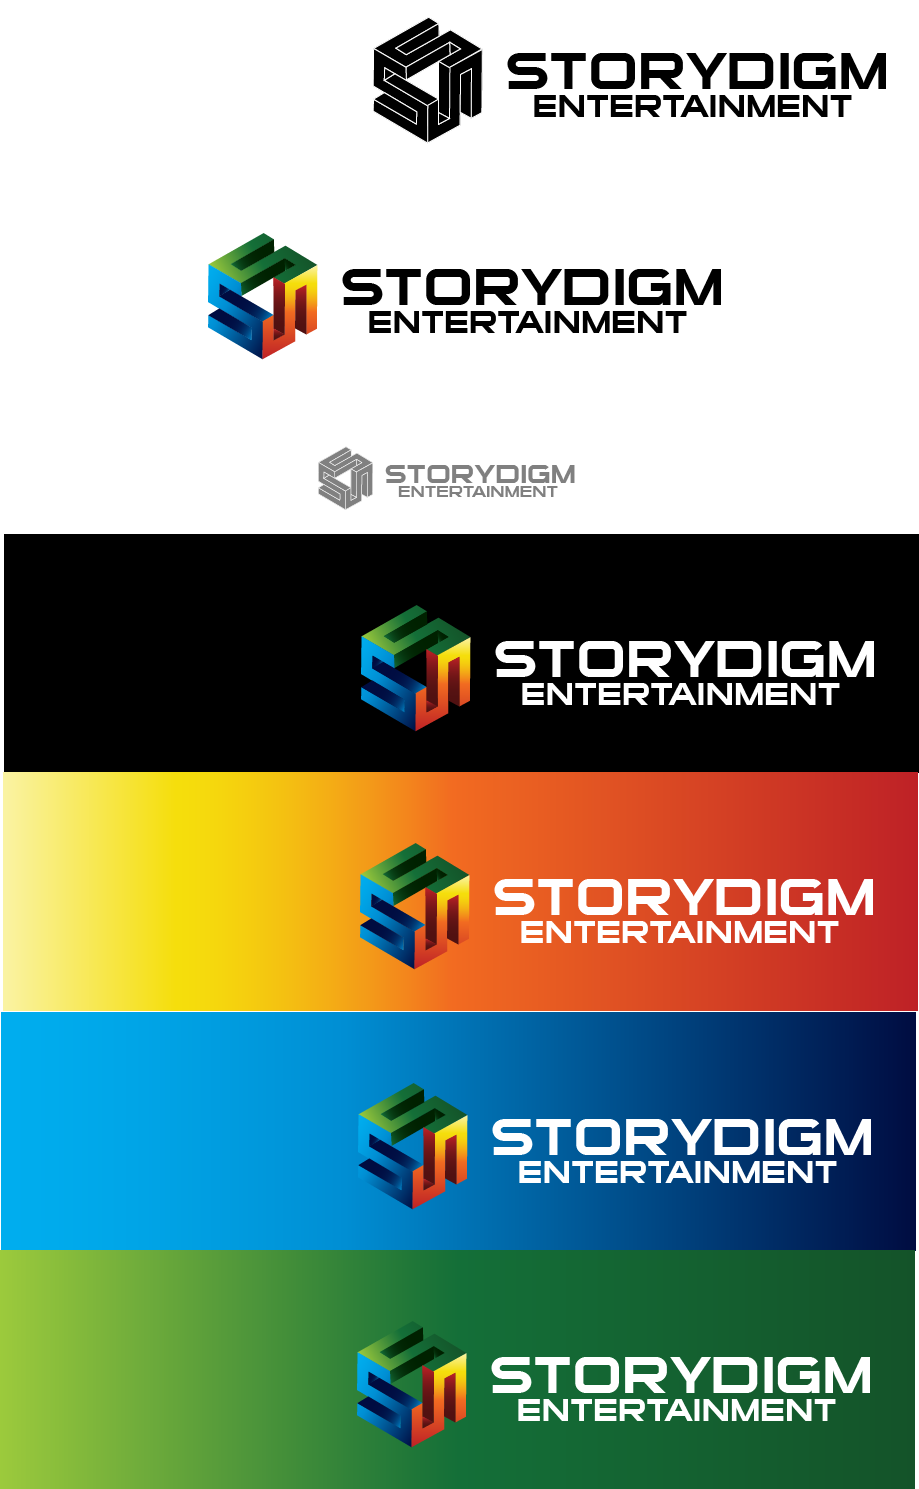 Logo Design by brands_in - Entry No. 103 in the Logo Design Contest Inspiring Logo Design for Storydigm Entertainment.